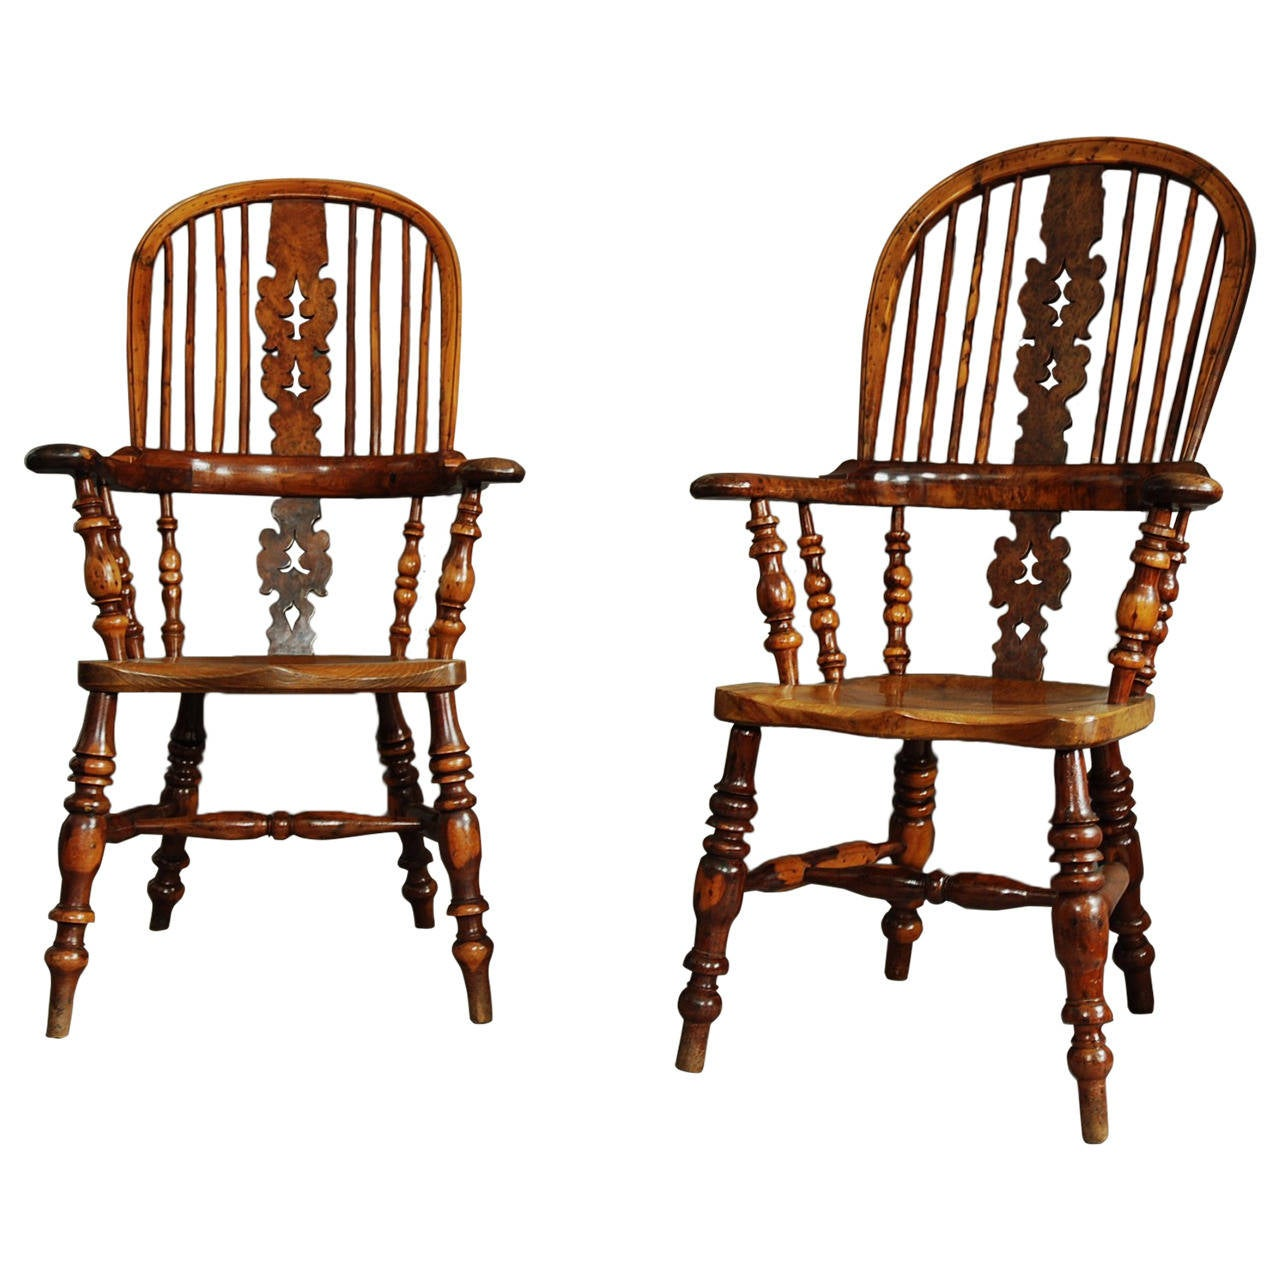 windsor chair with arms outdoor accessories pair of broad arm burr yew wood high back chairs